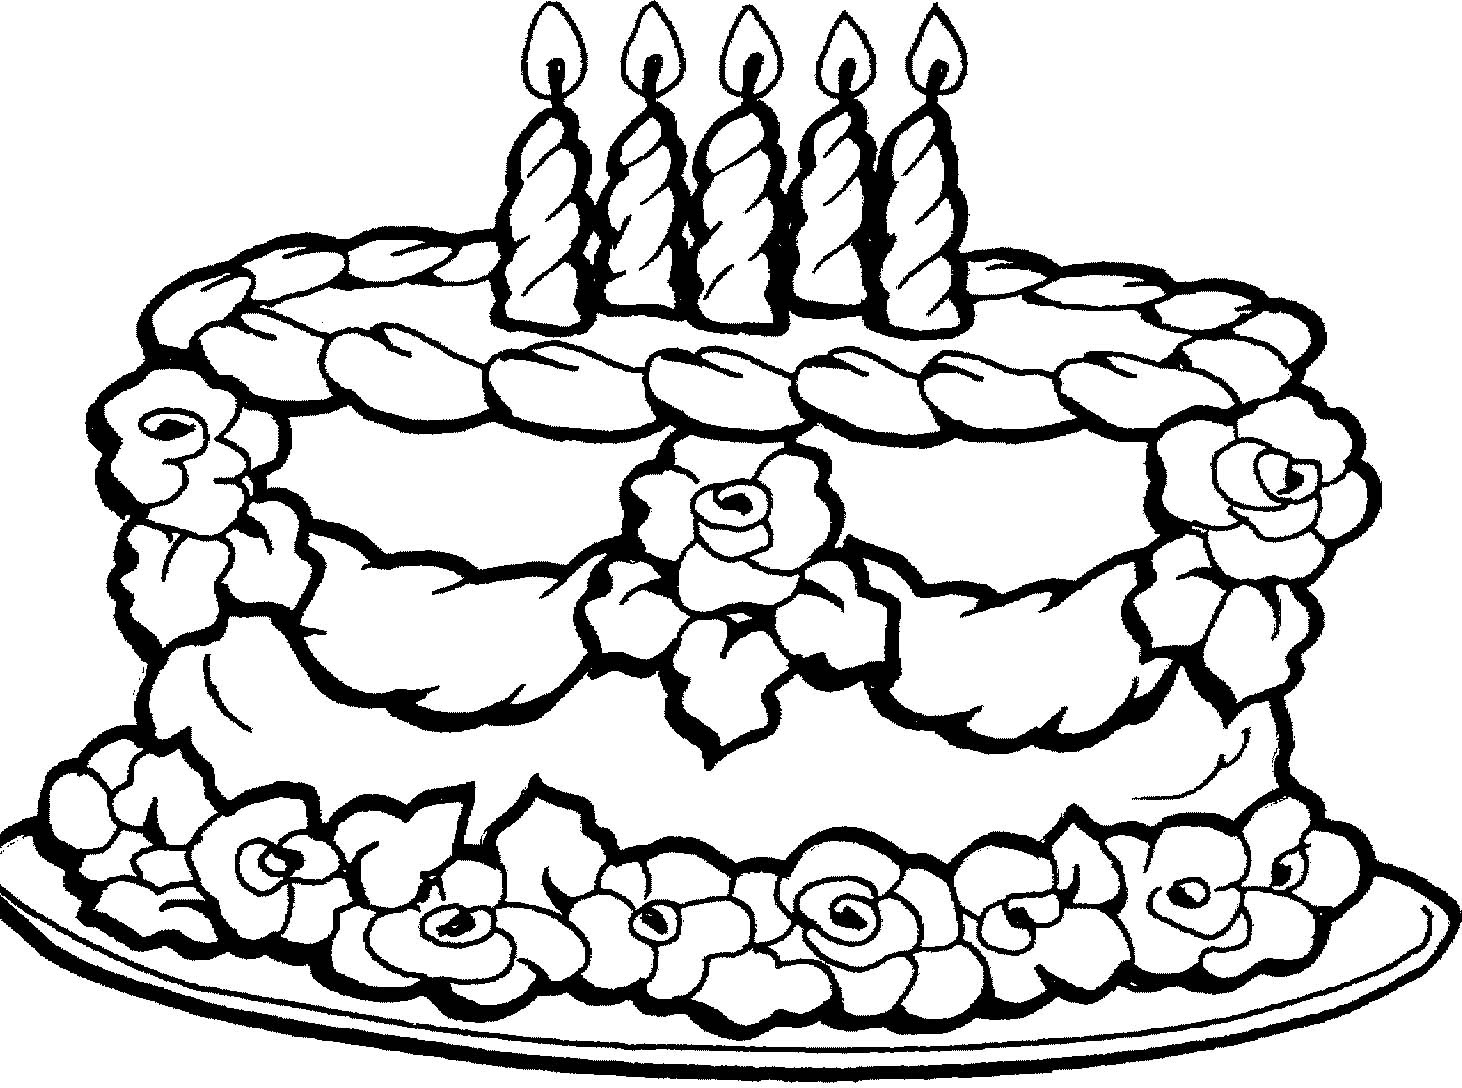 1462x1088 Pictures Birthday Cake Coloring Pages 90 For Your Line Drawings